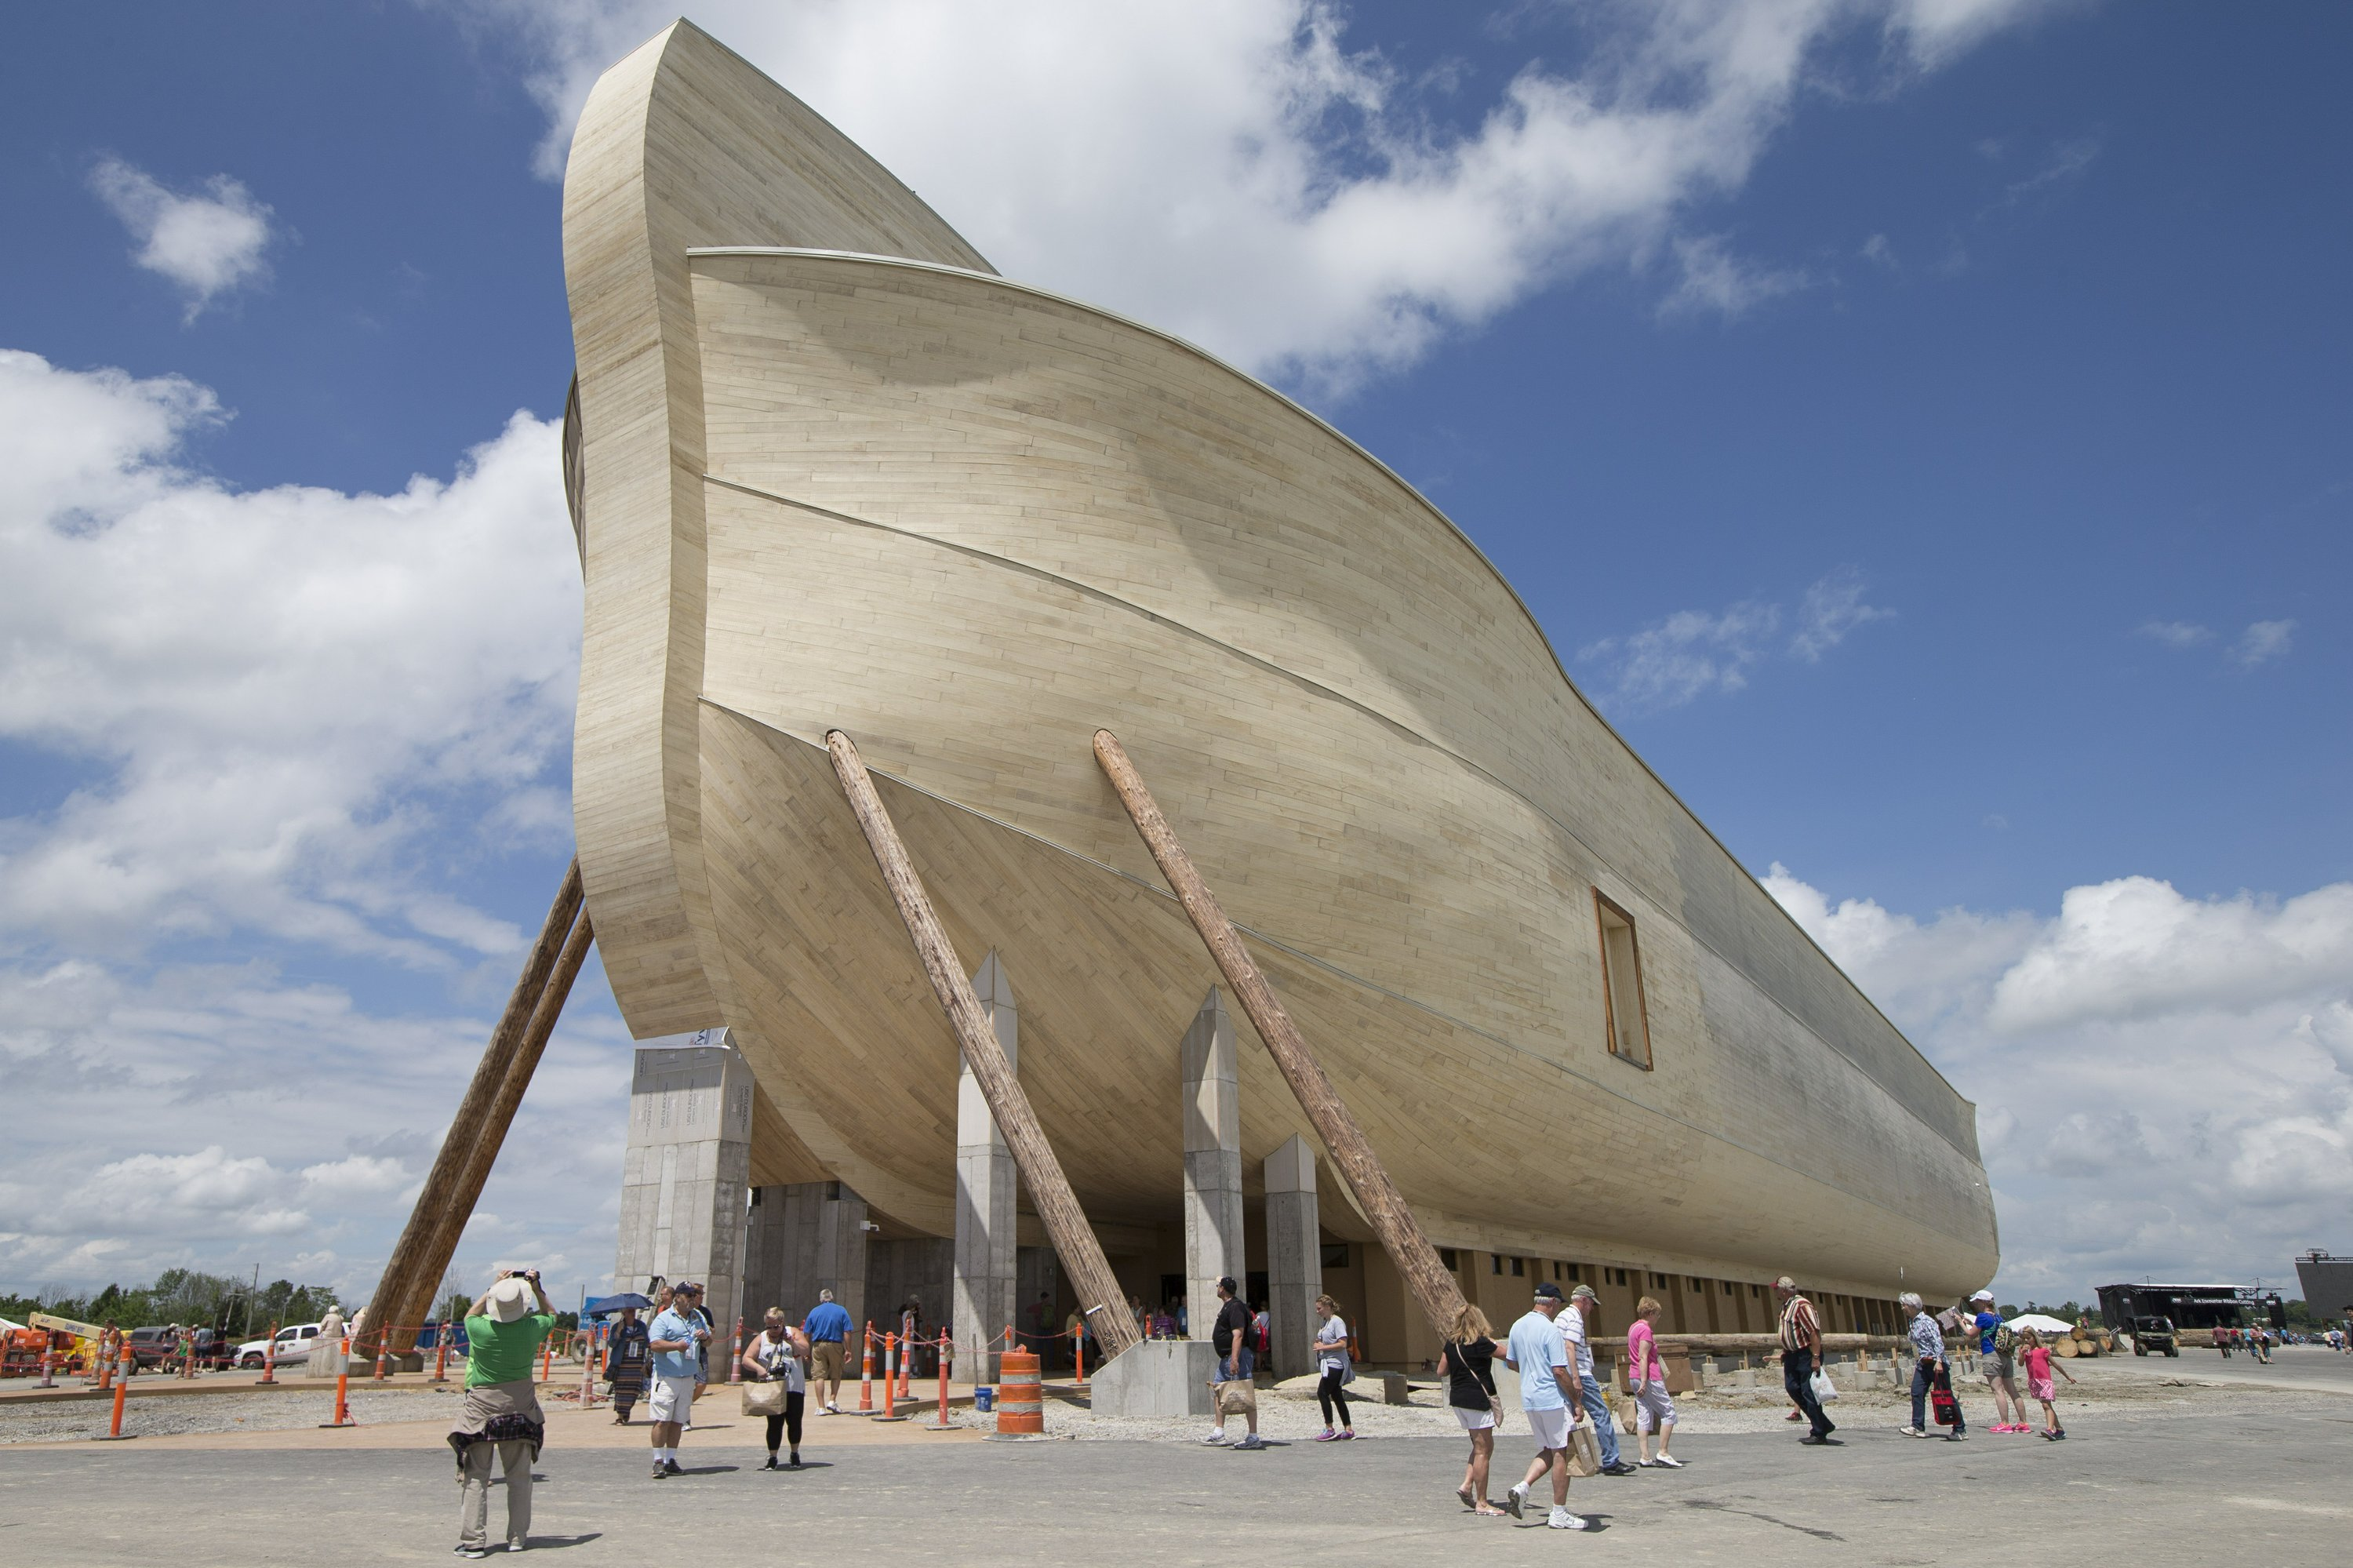 Bill Nye visits new Noah's ark attraction he criticized